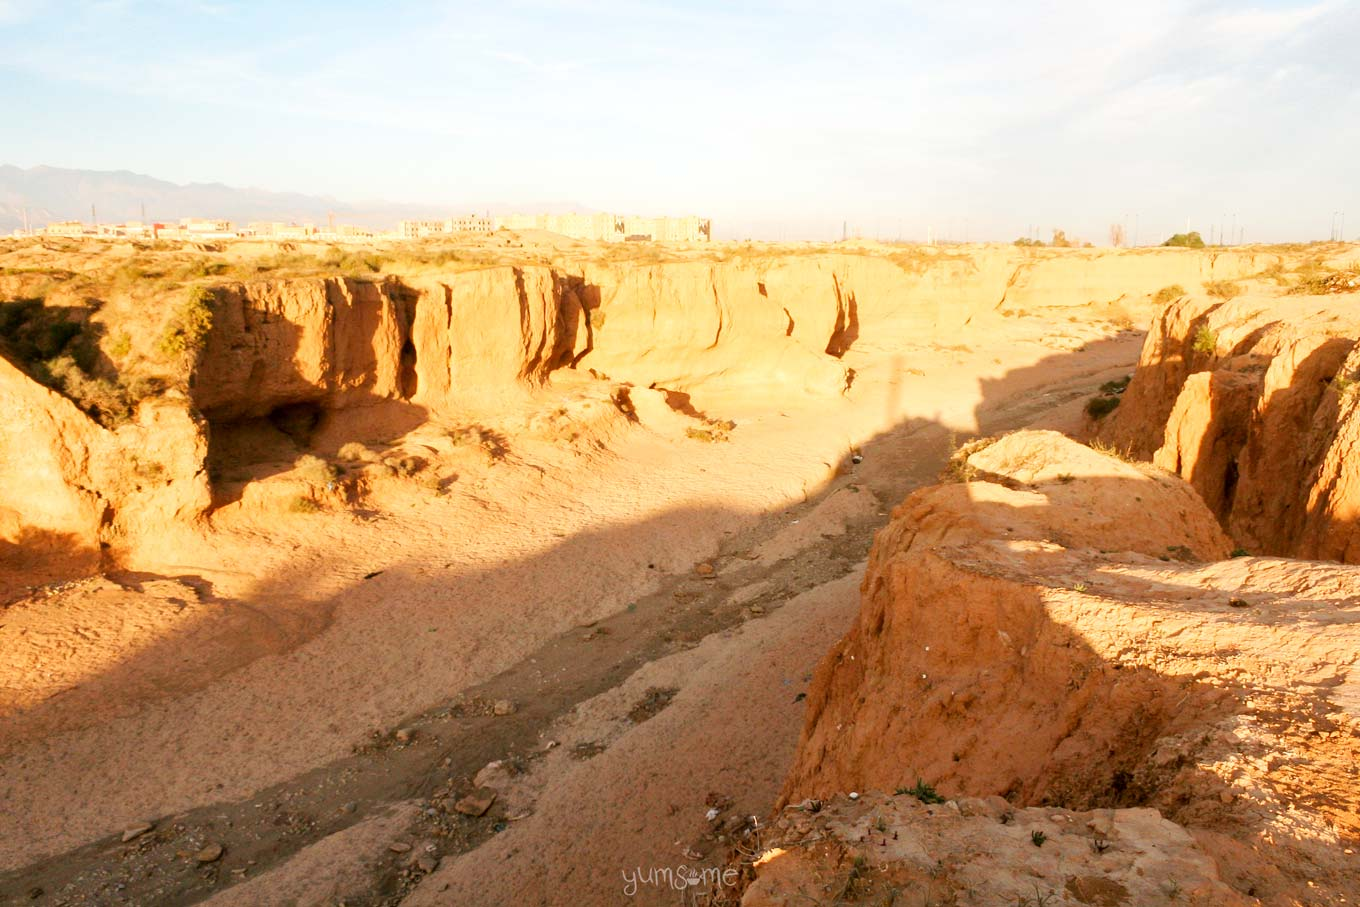 Dry river in Taroudannt, Morocco | yumsome.com